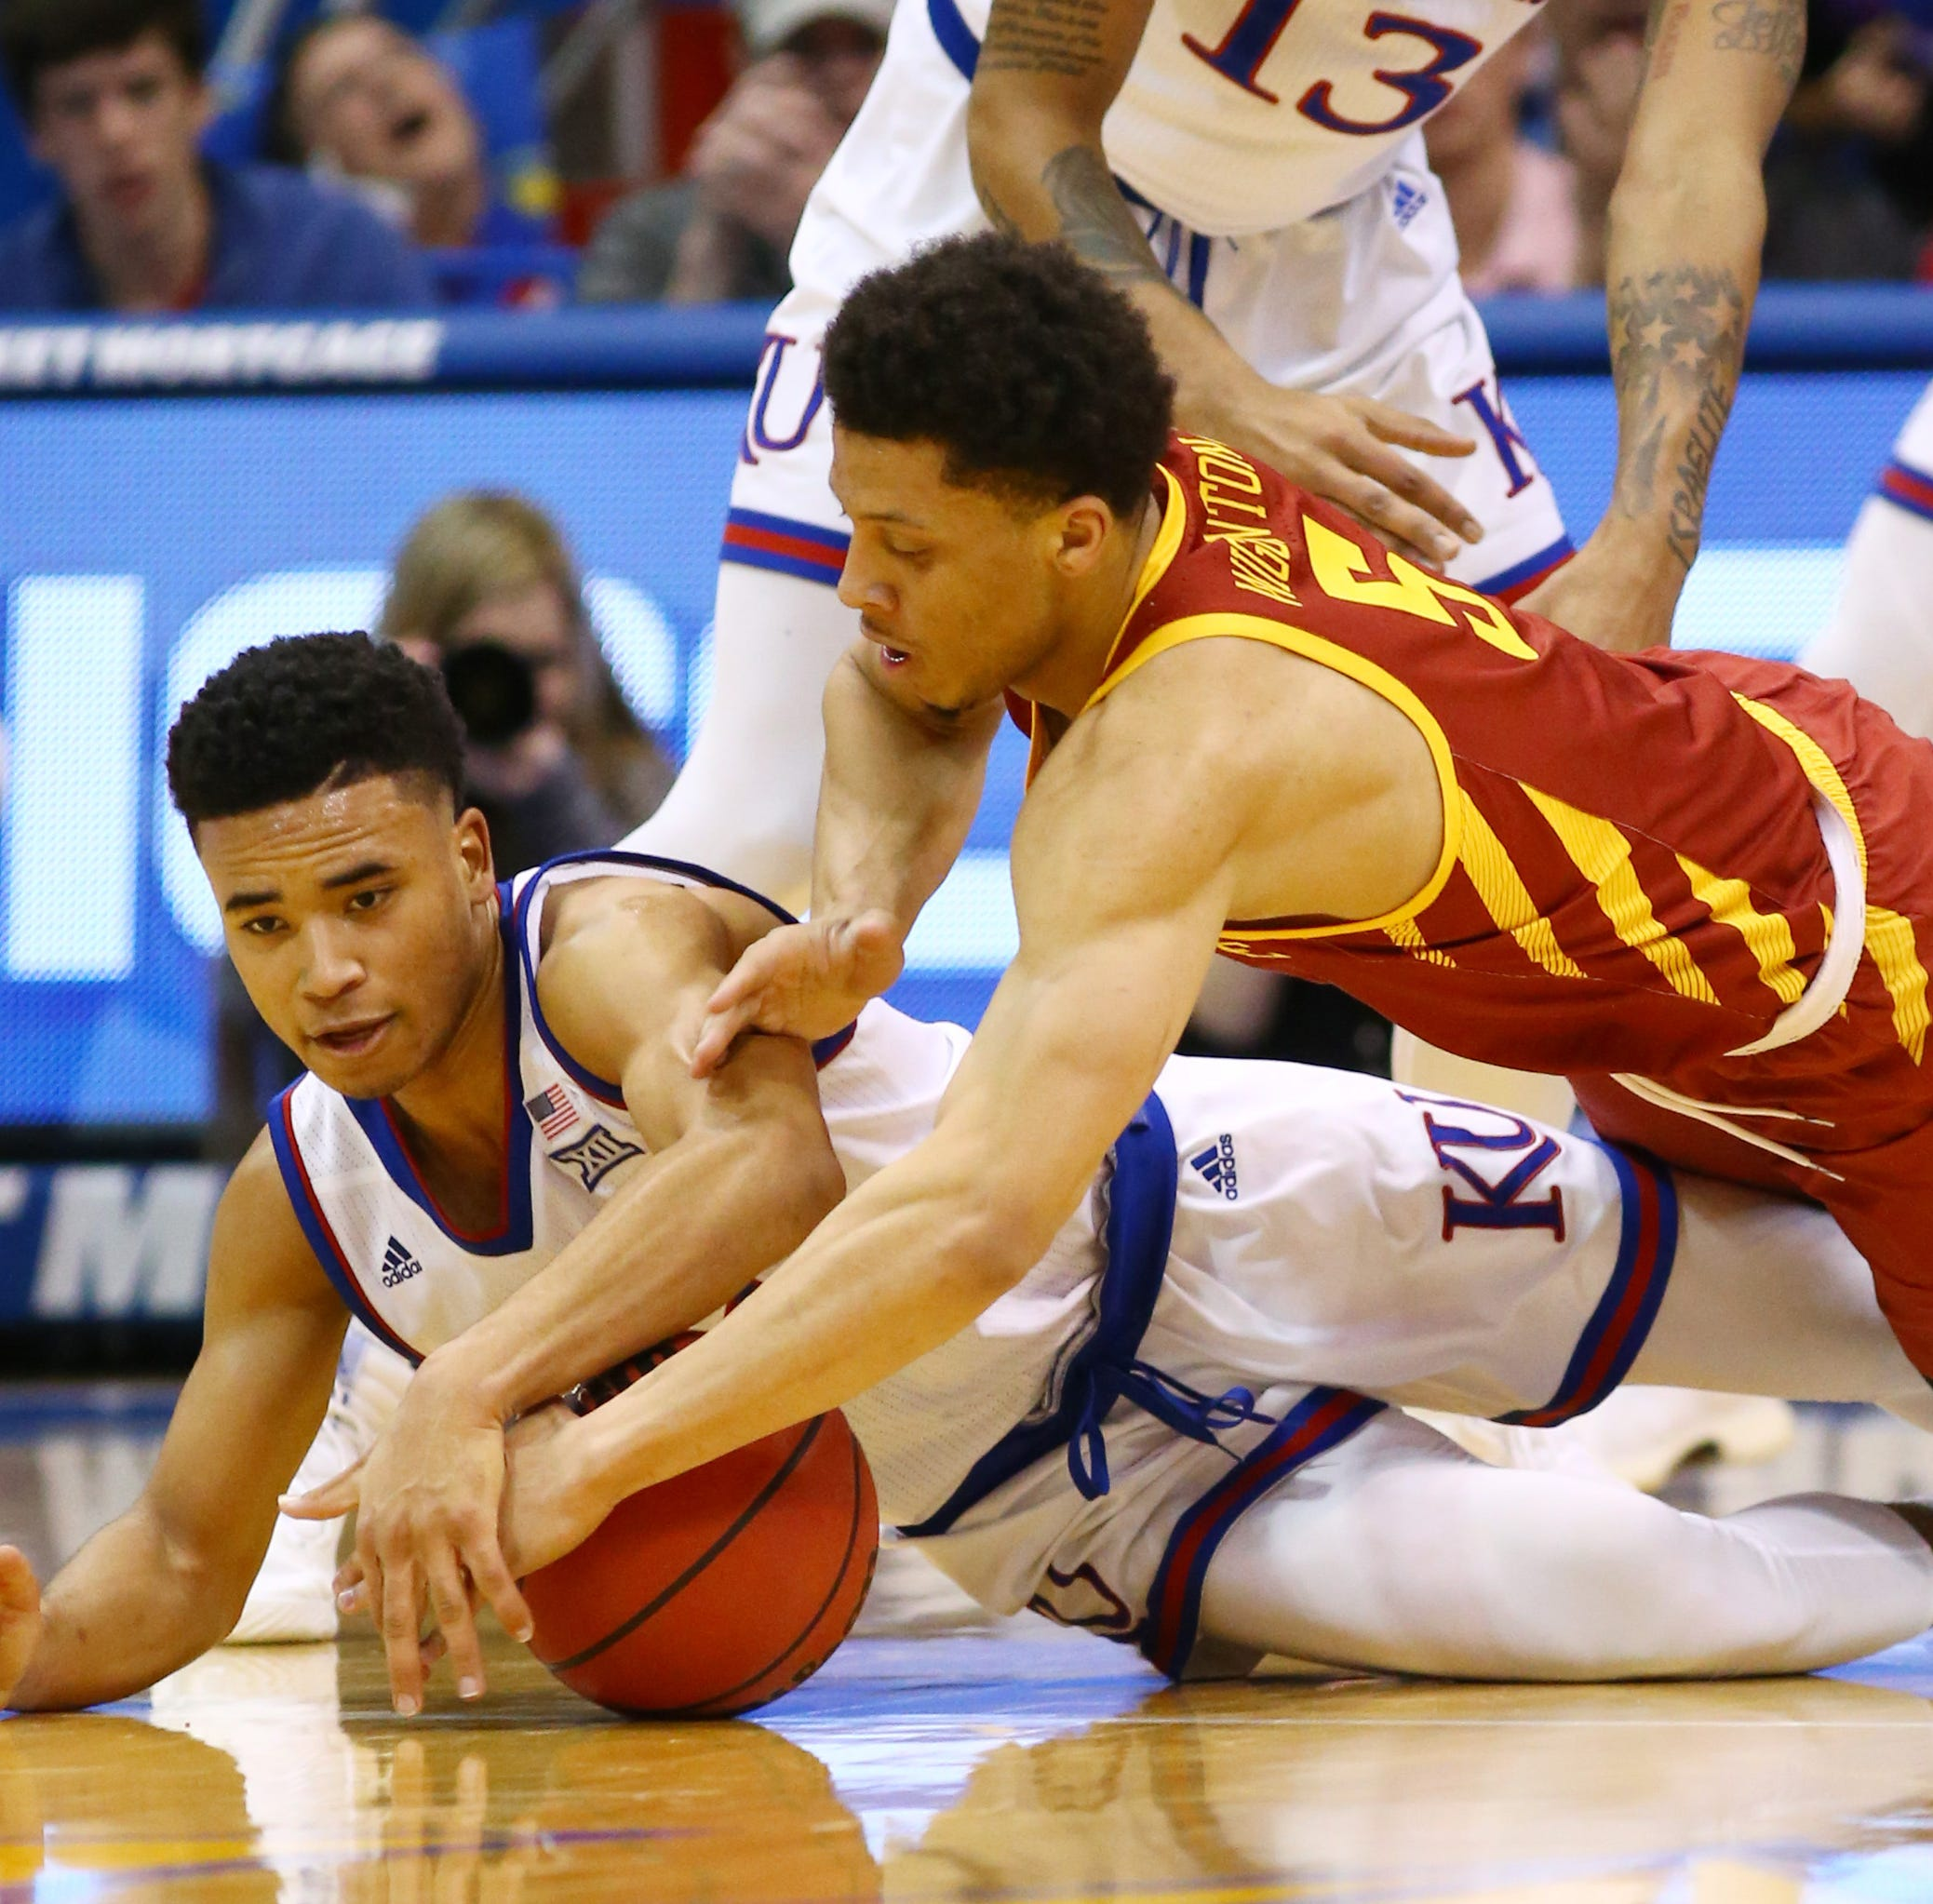 Iowa State takeaways: Cyclones struggle defensively against Kansas, Wigginton's inconsistencies continue and more